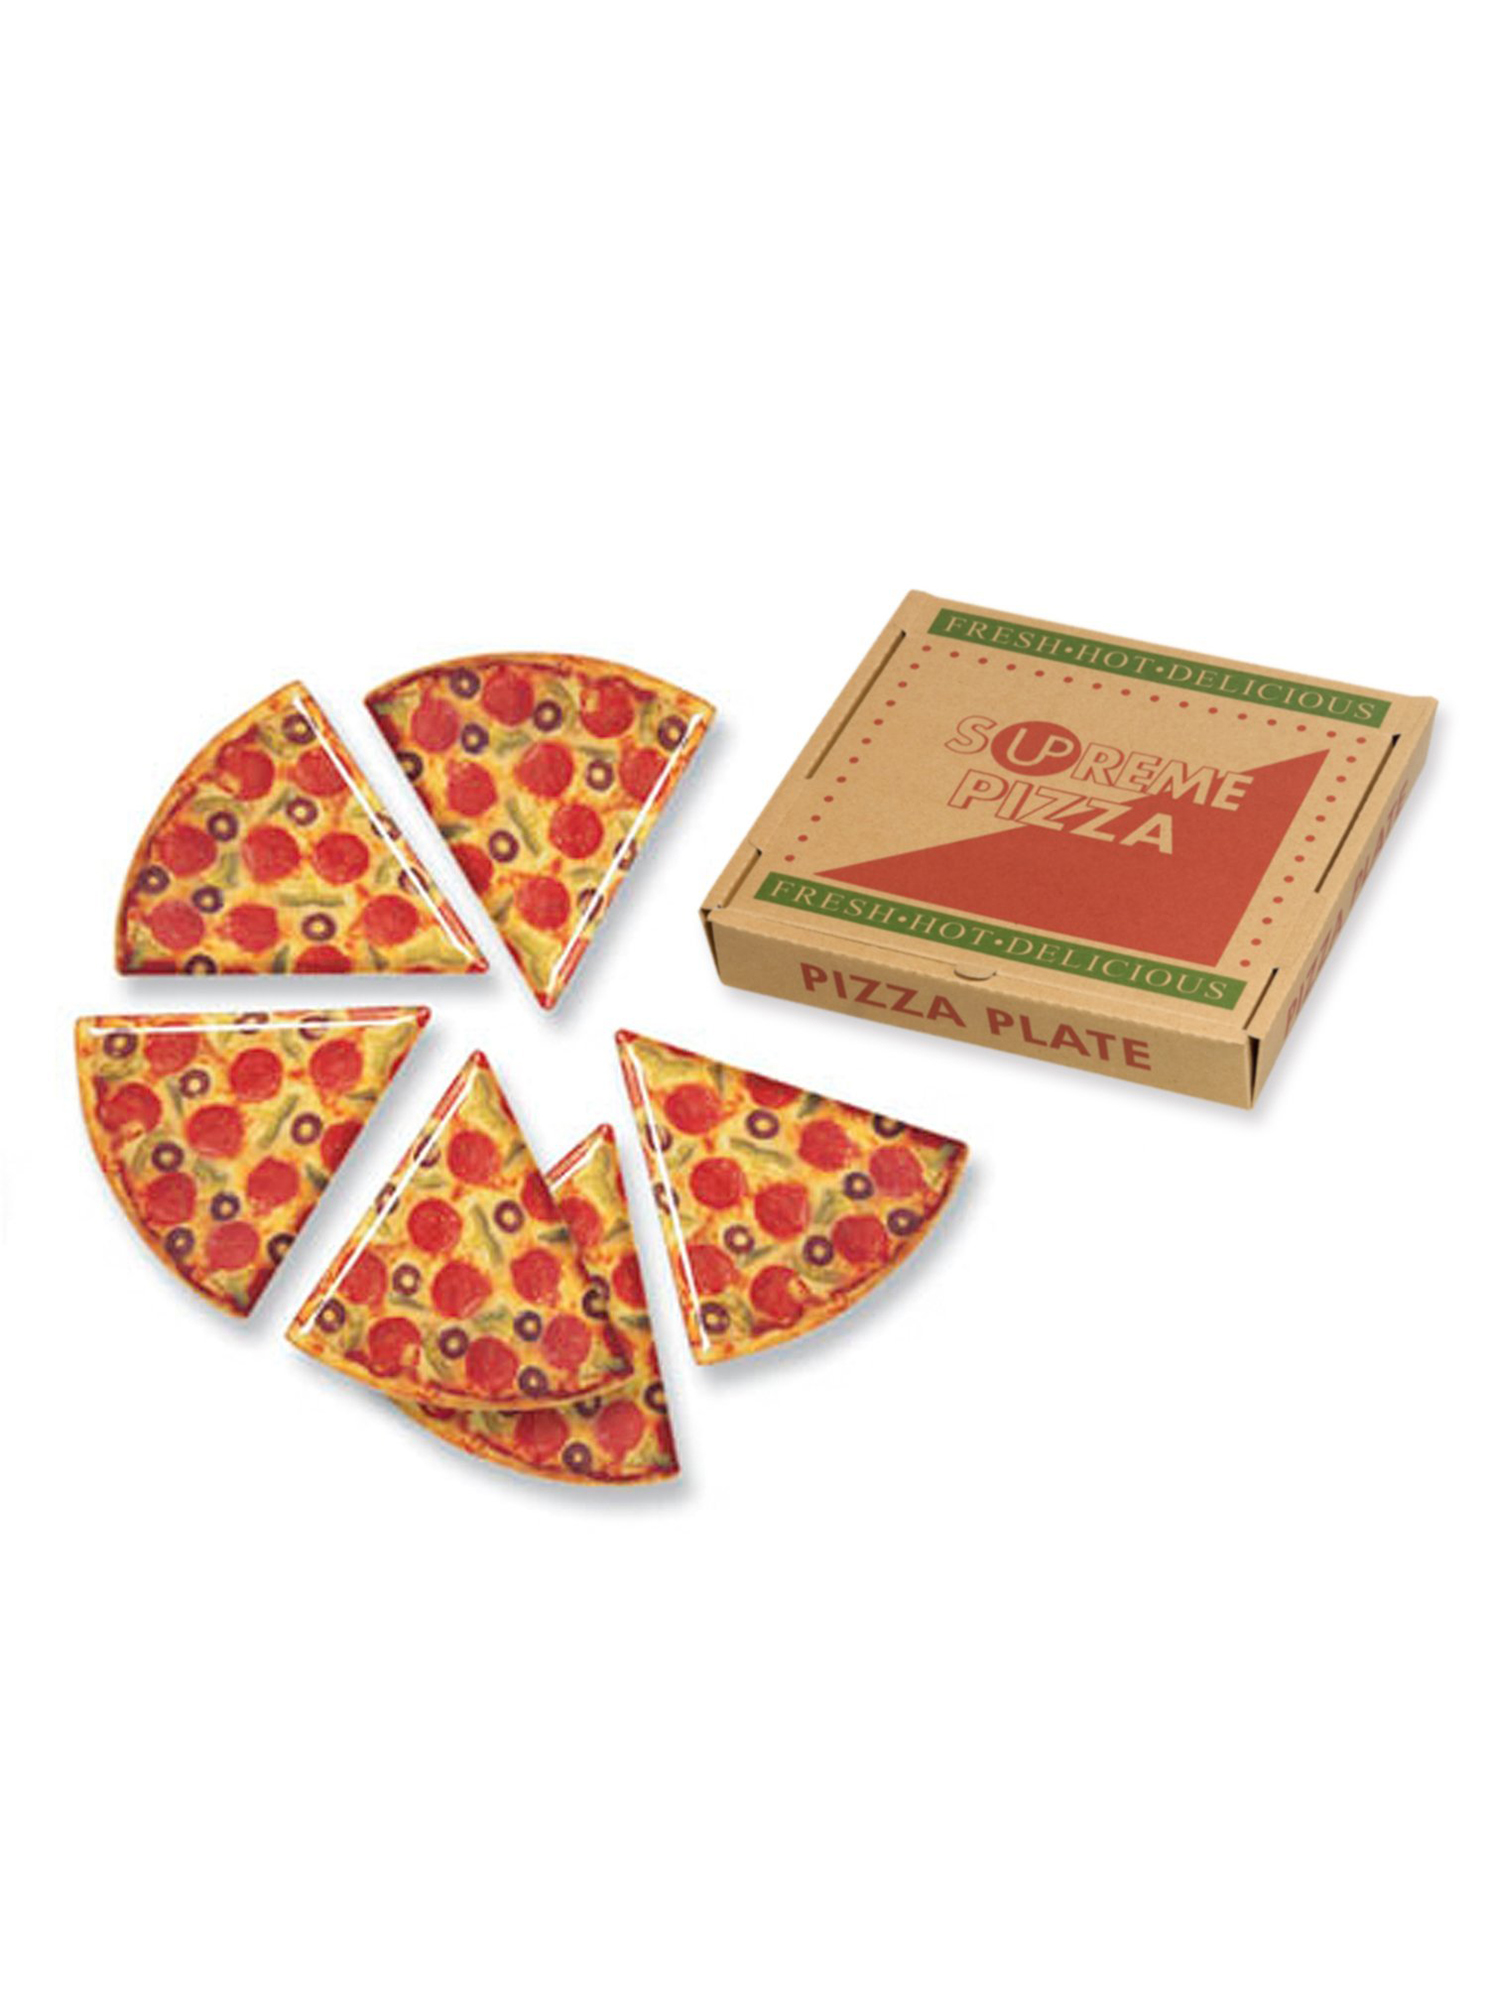 pizza-slice-plates